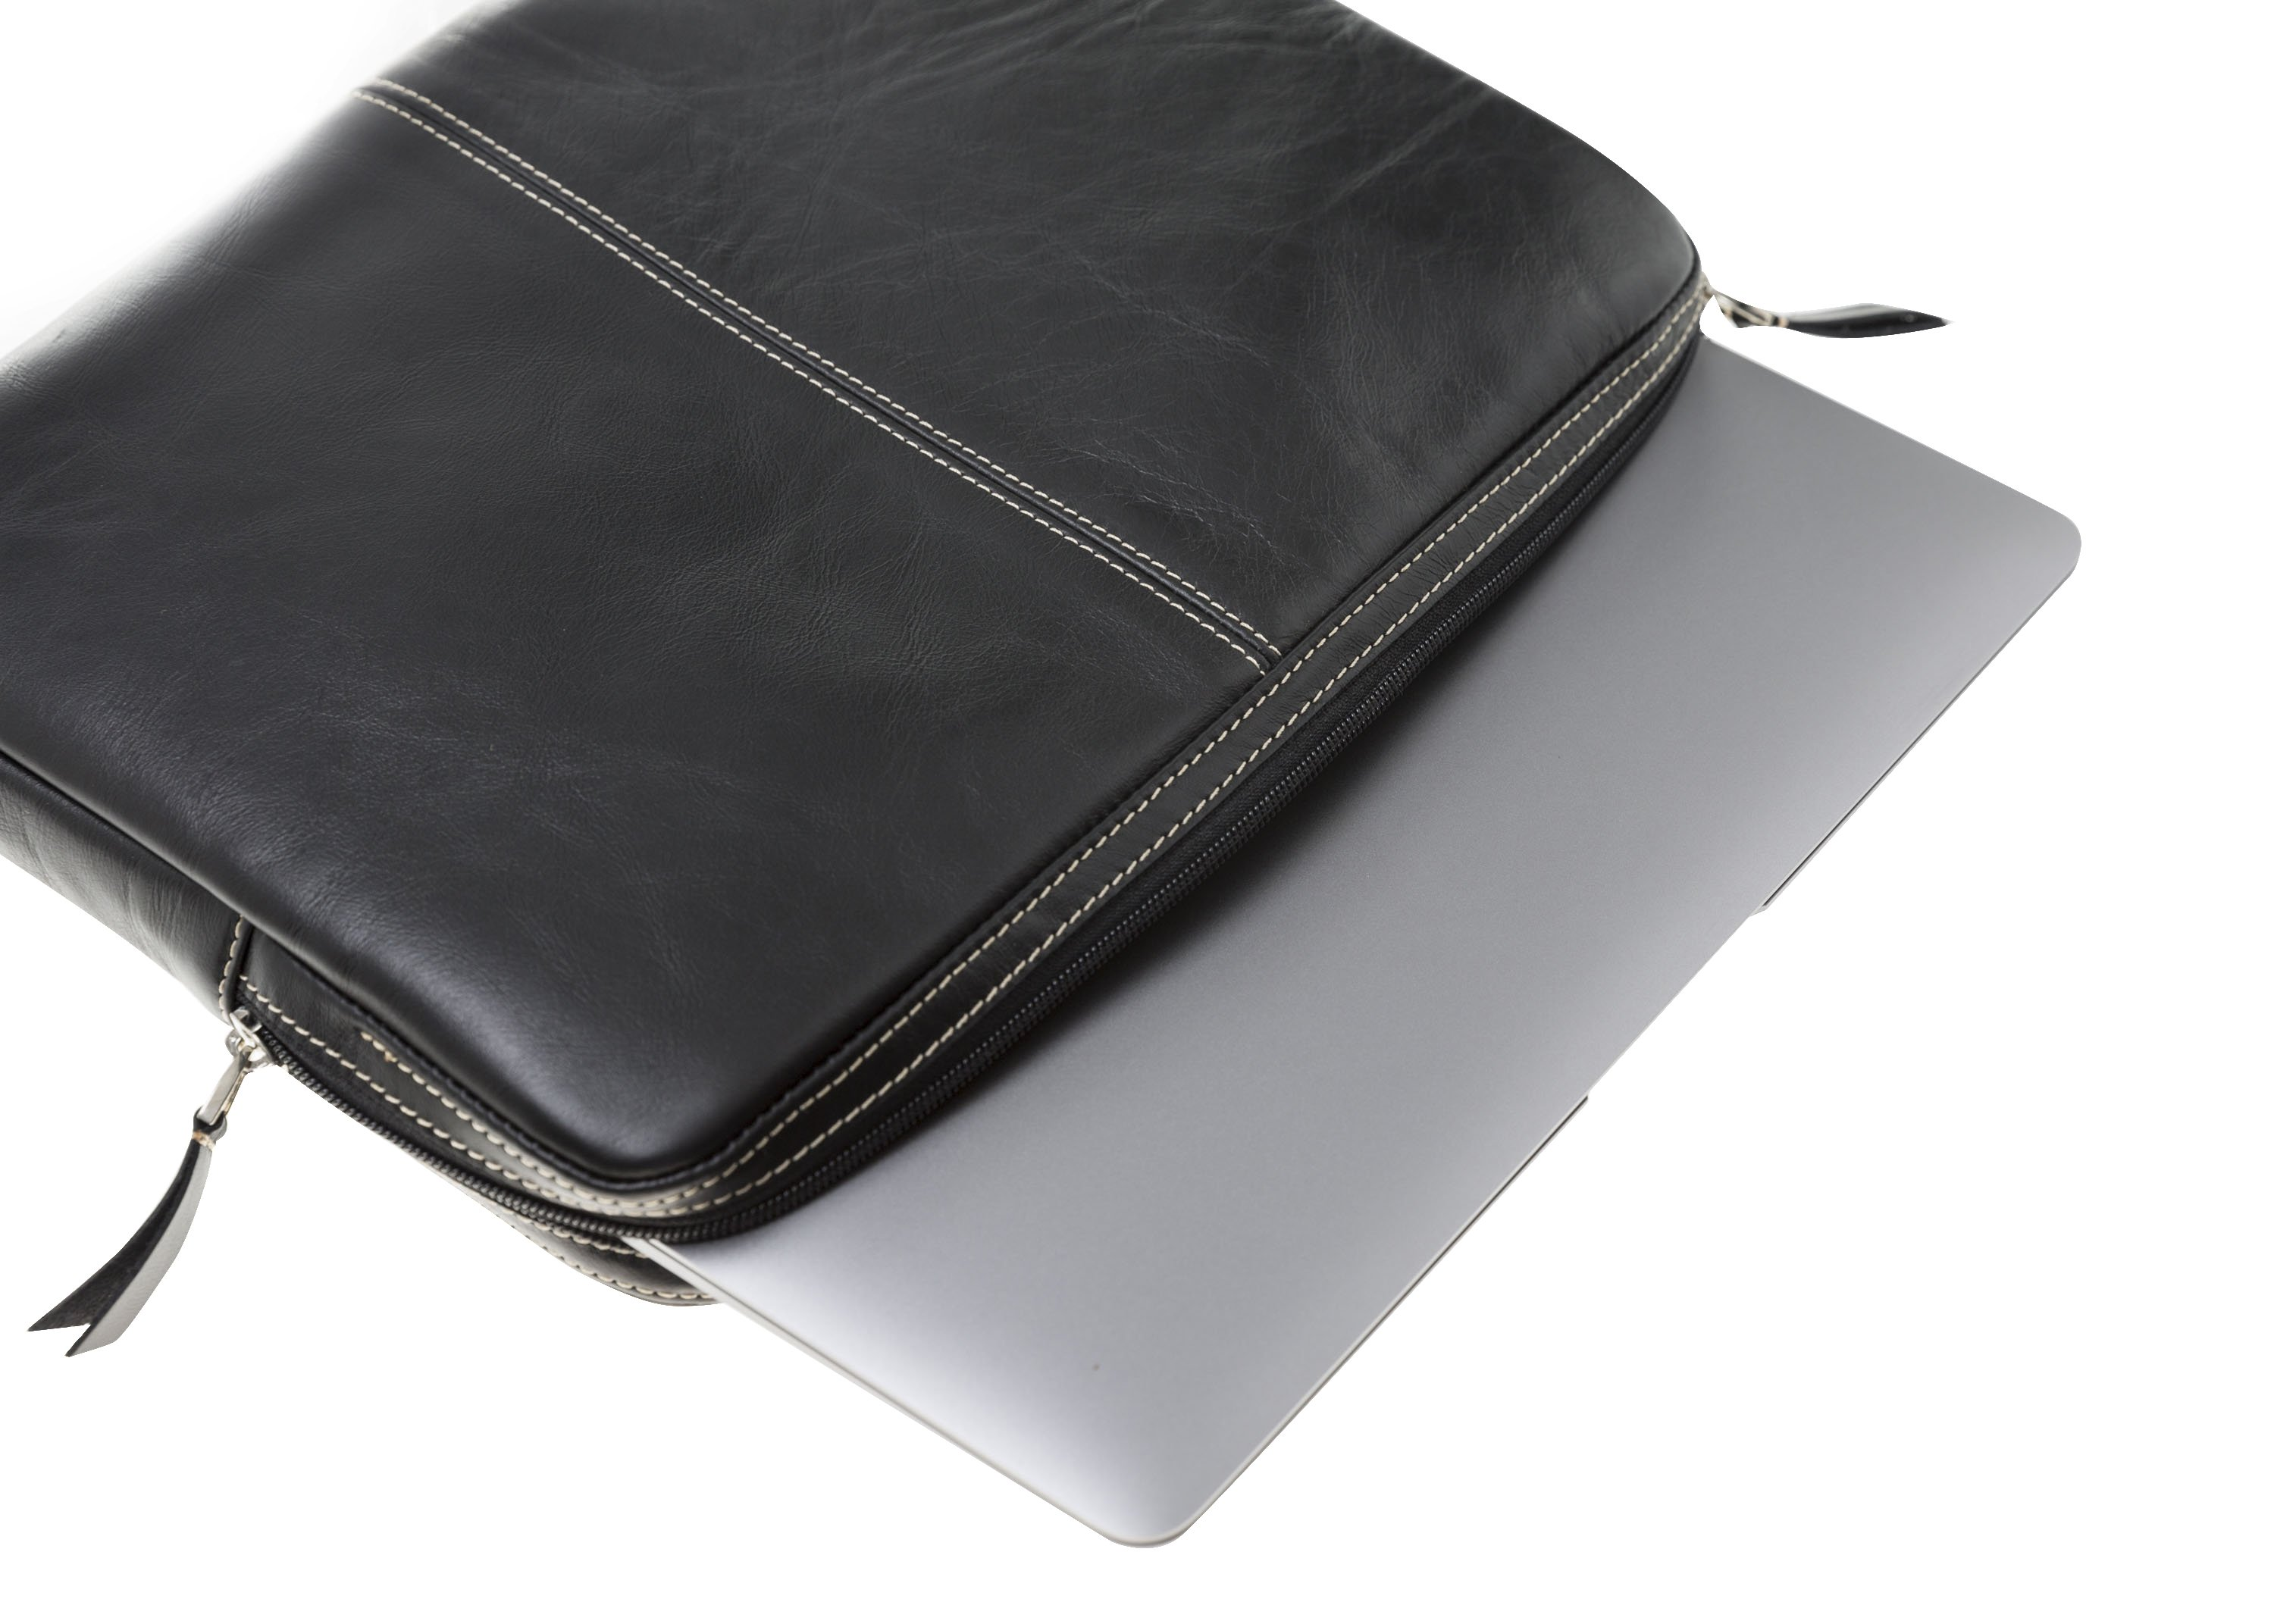 Sleeve MacBook Pro 15 Zoll in Schwarz